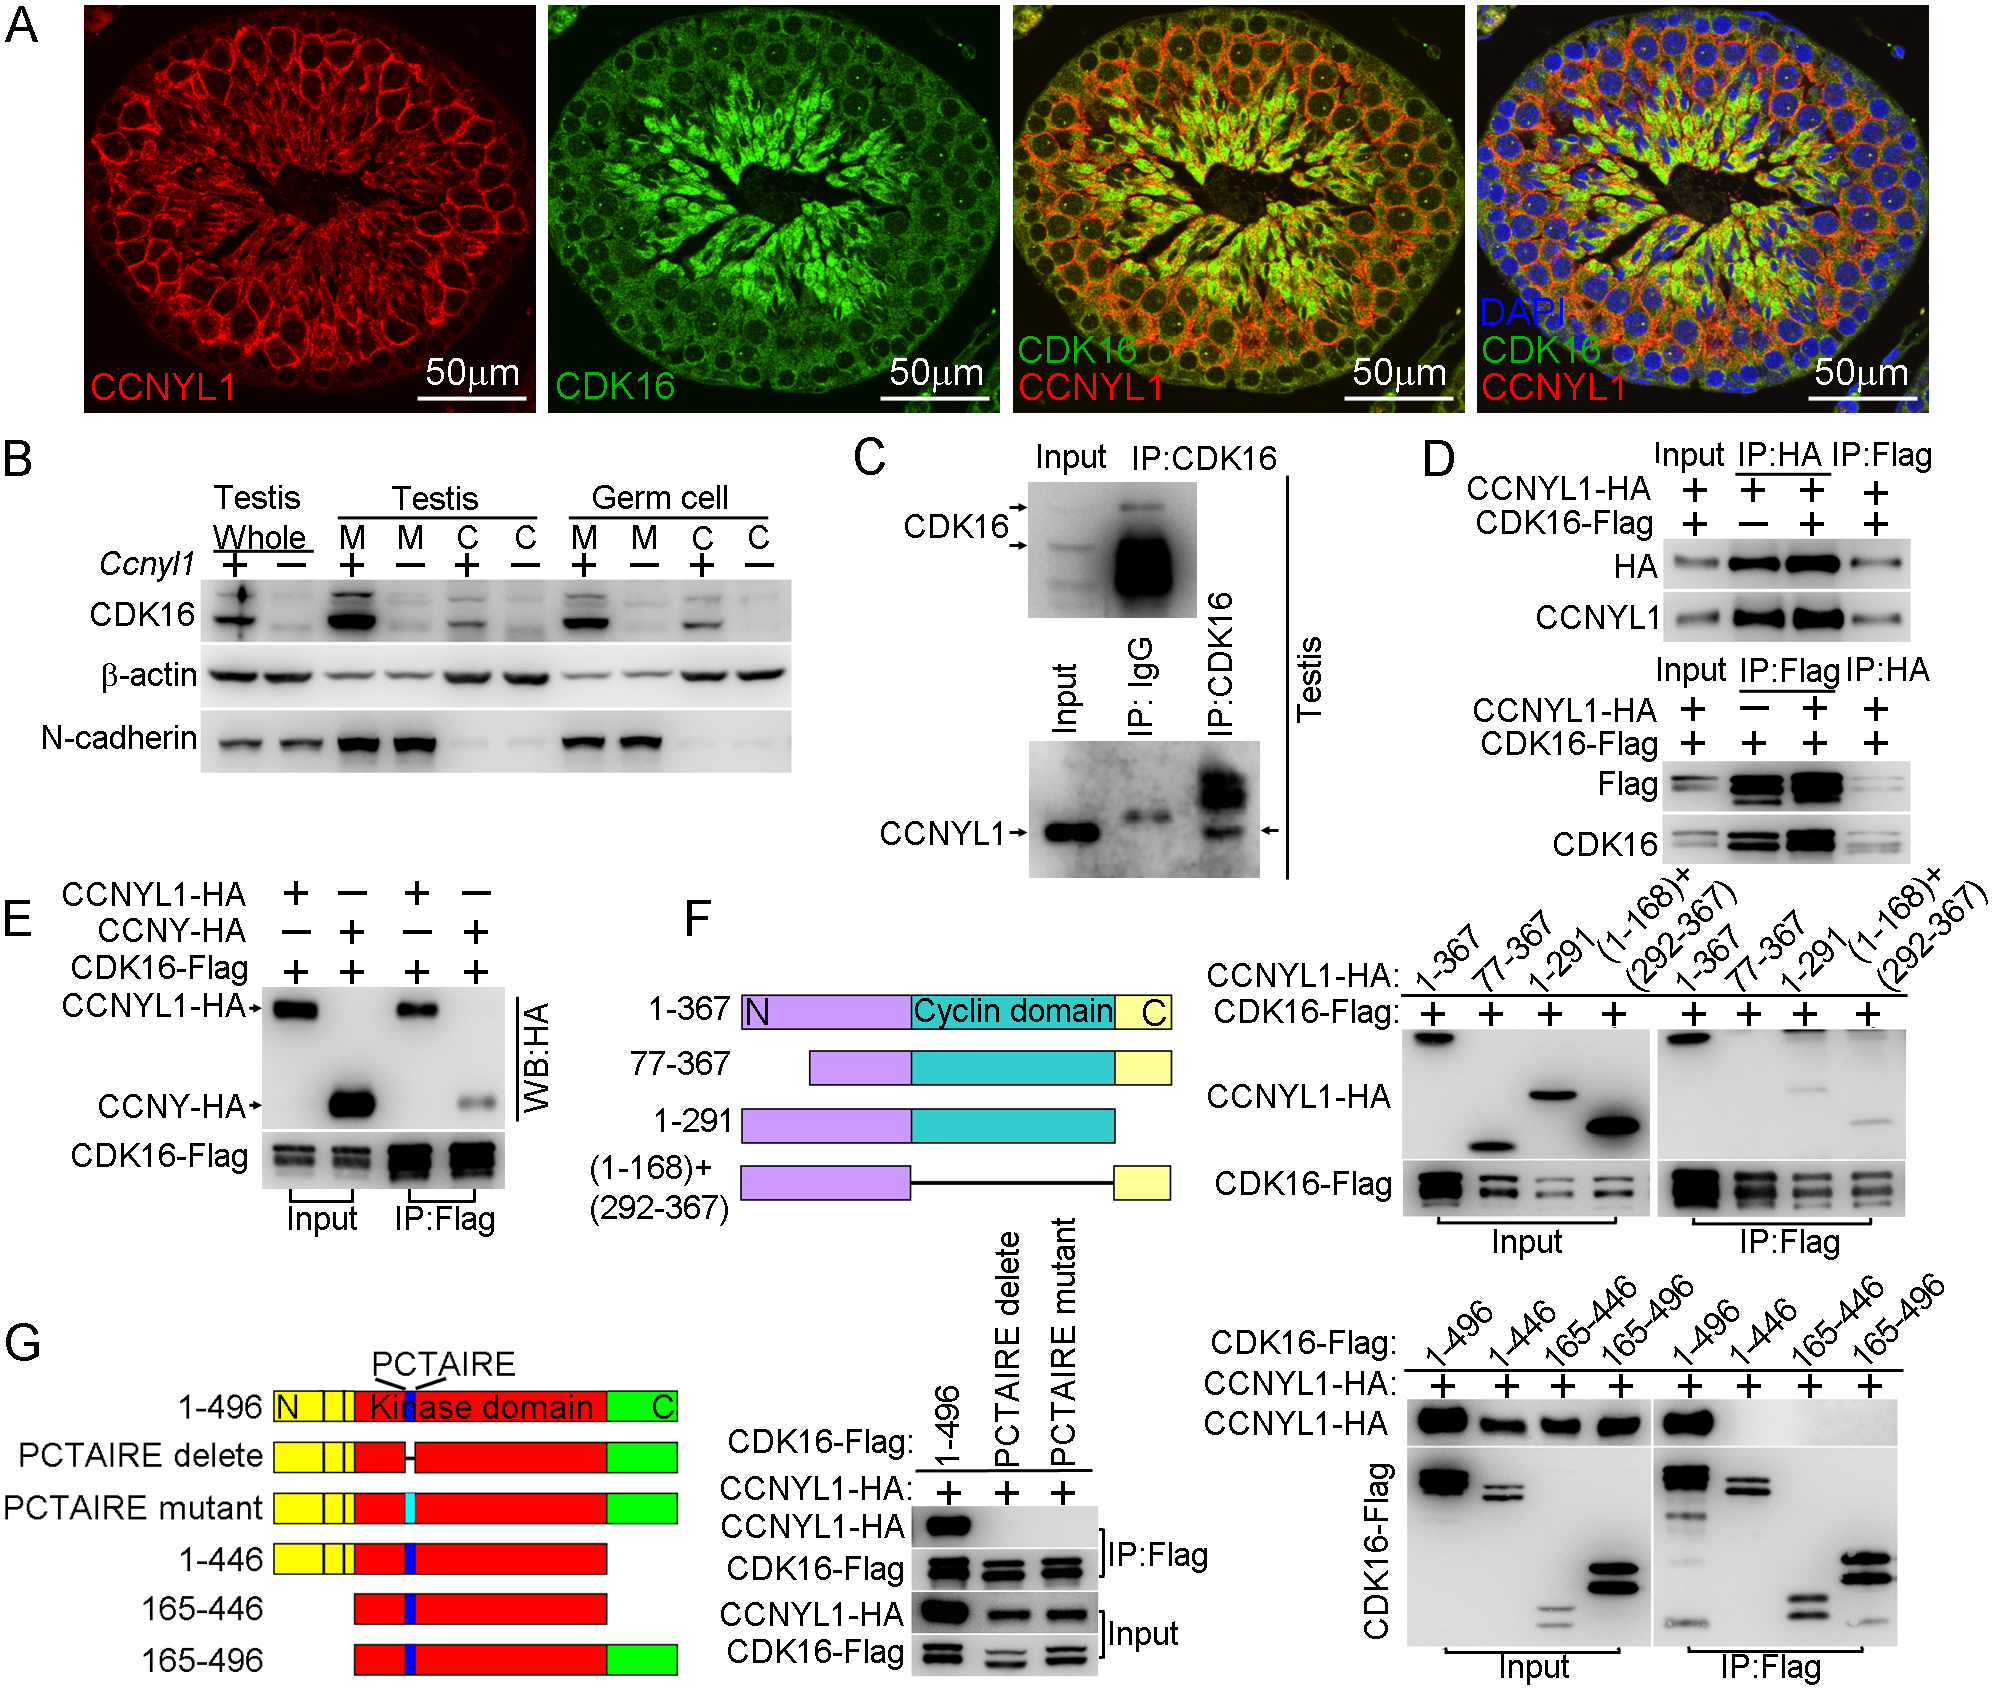 Interaction of CCNYL1 with CDK16.